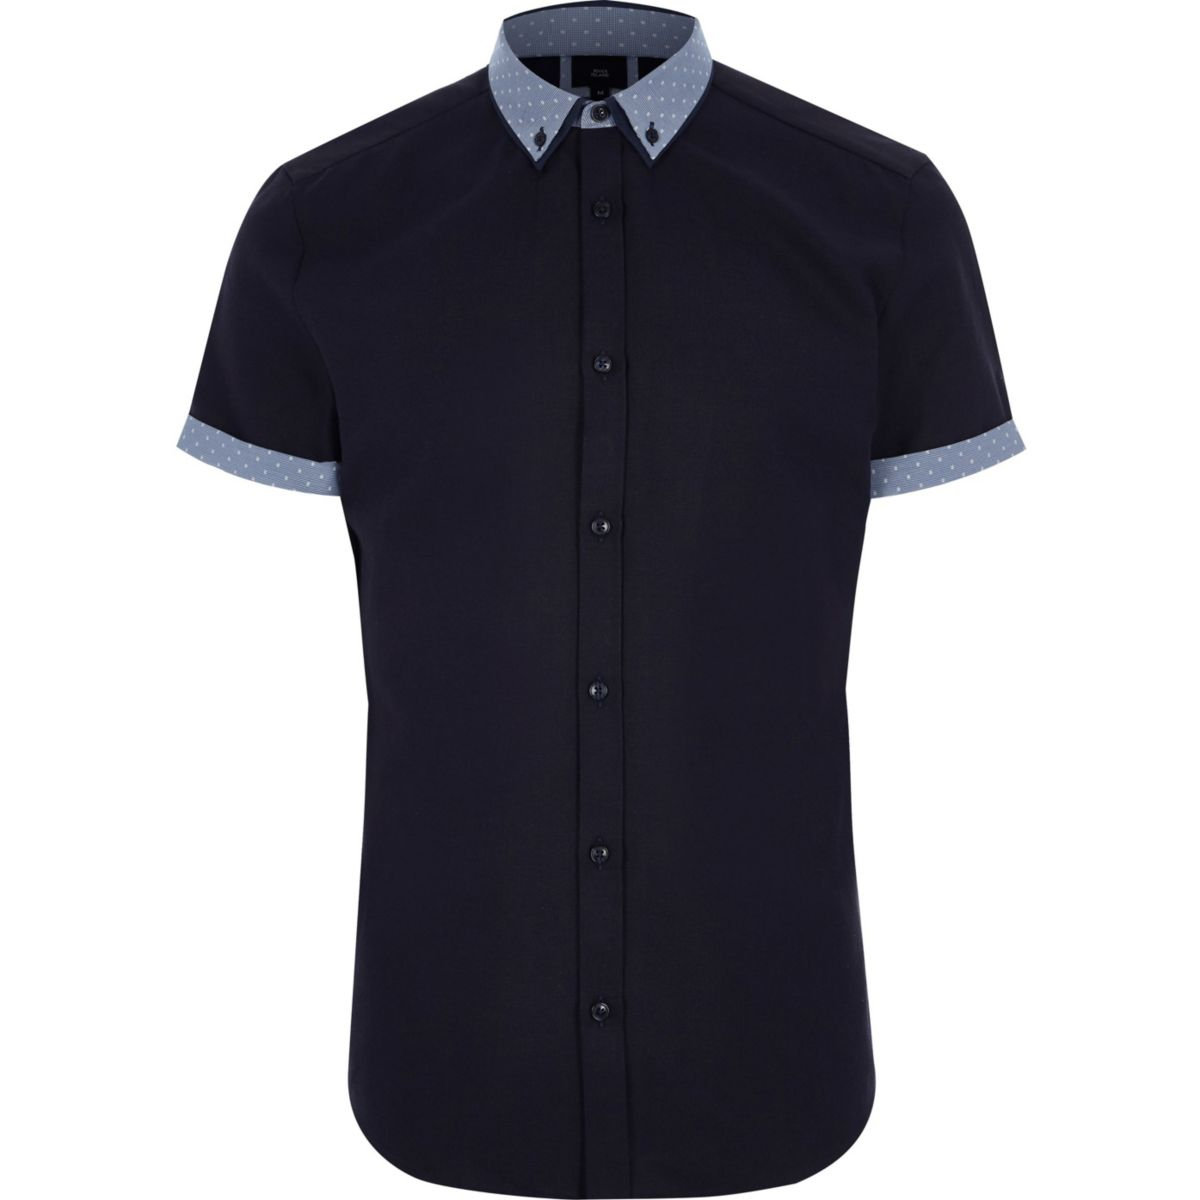 Big and Tall navy polka dot collar shirt